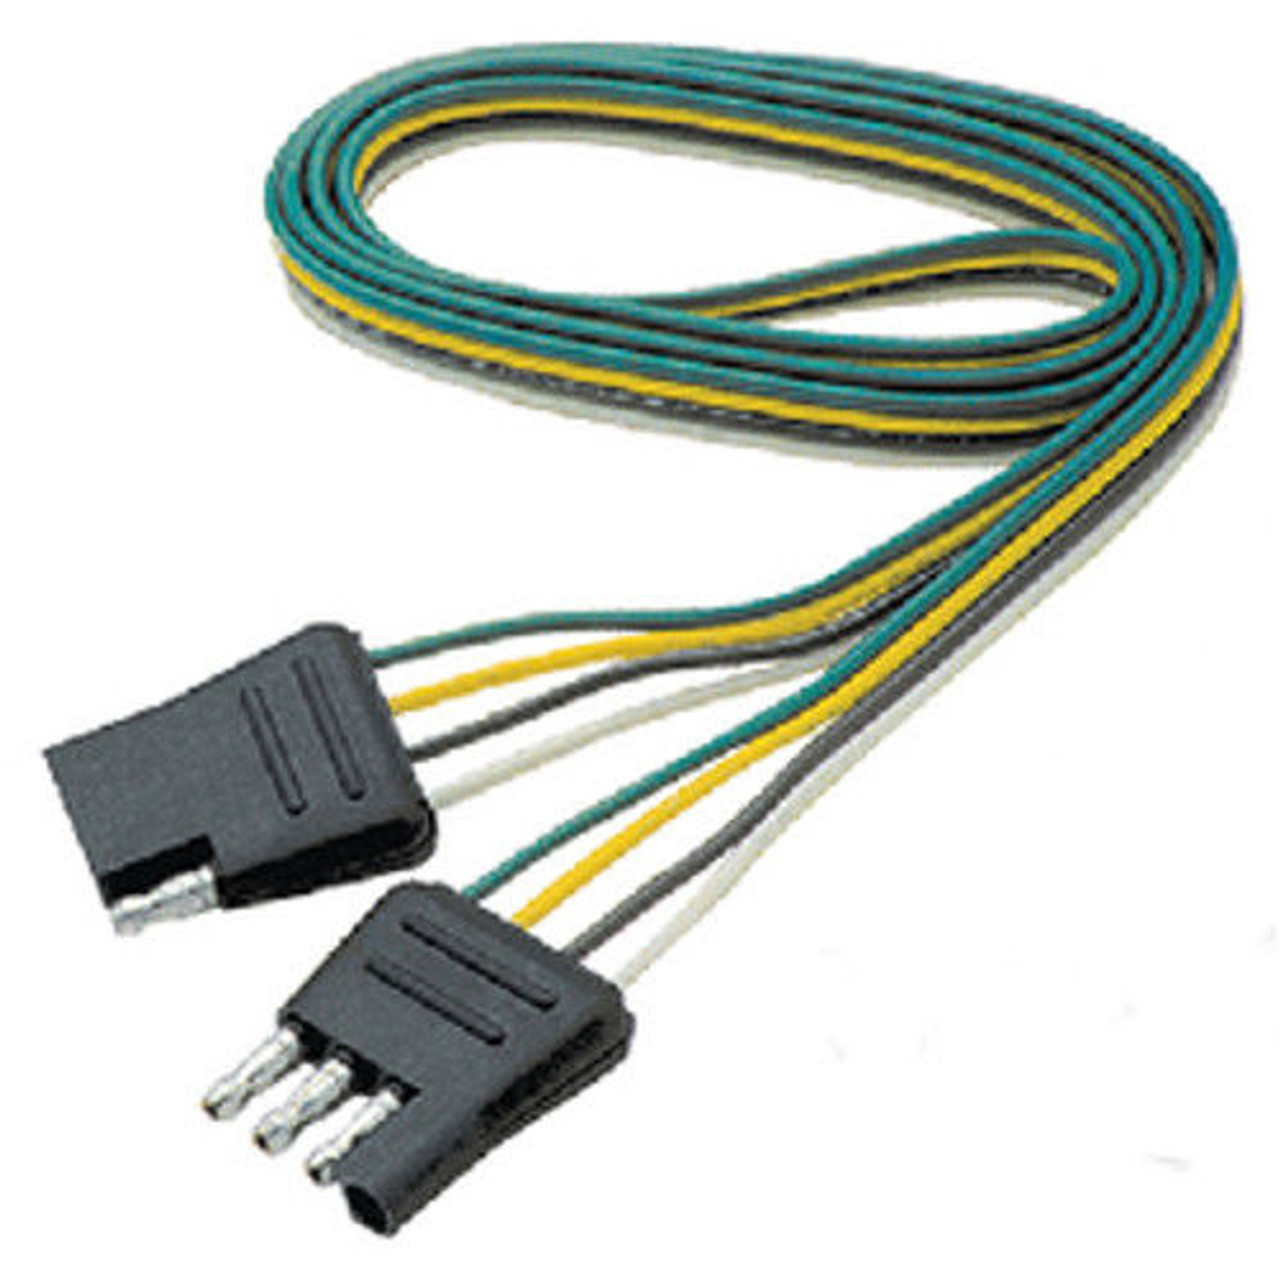 60 Inch Long Flat 4 Way Boat Trailer Wiring Harness Extension A Boat Trailer Wiring Harness on